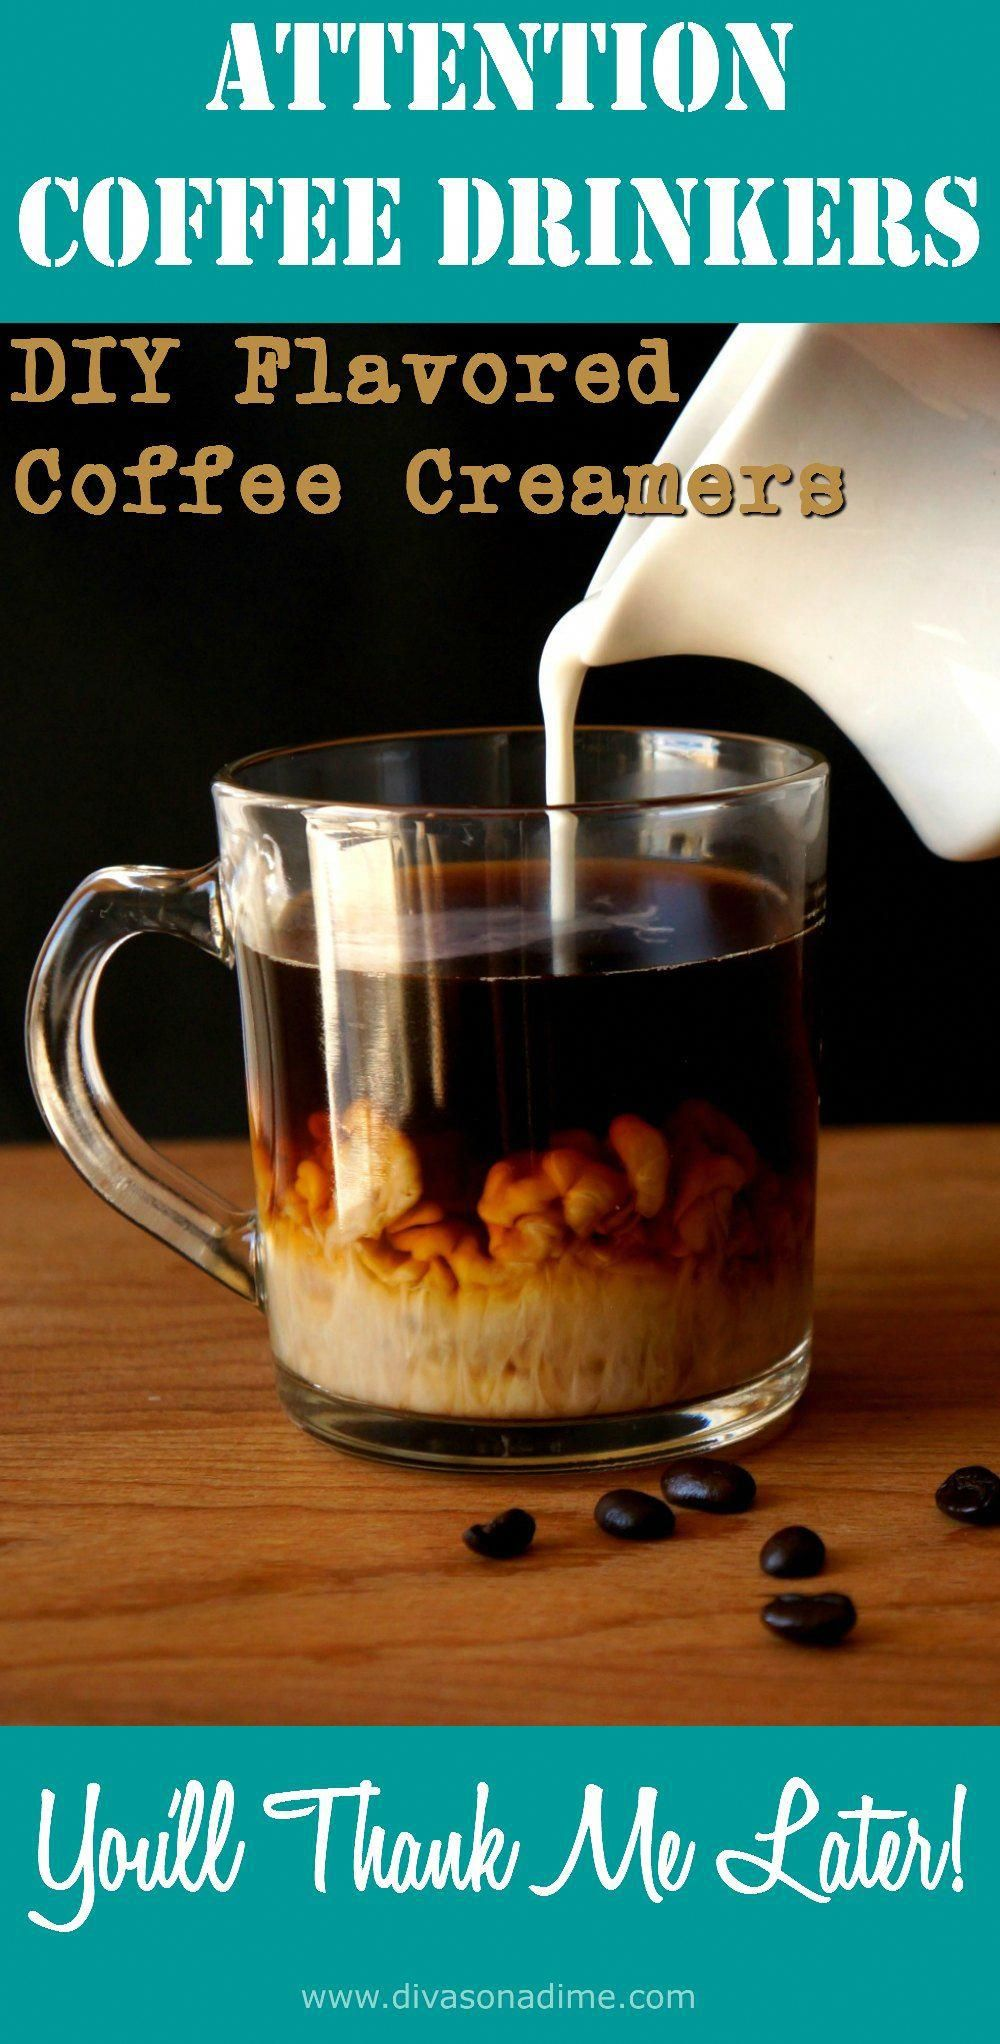 Love coffee here is one easy recipe for homemade coffee